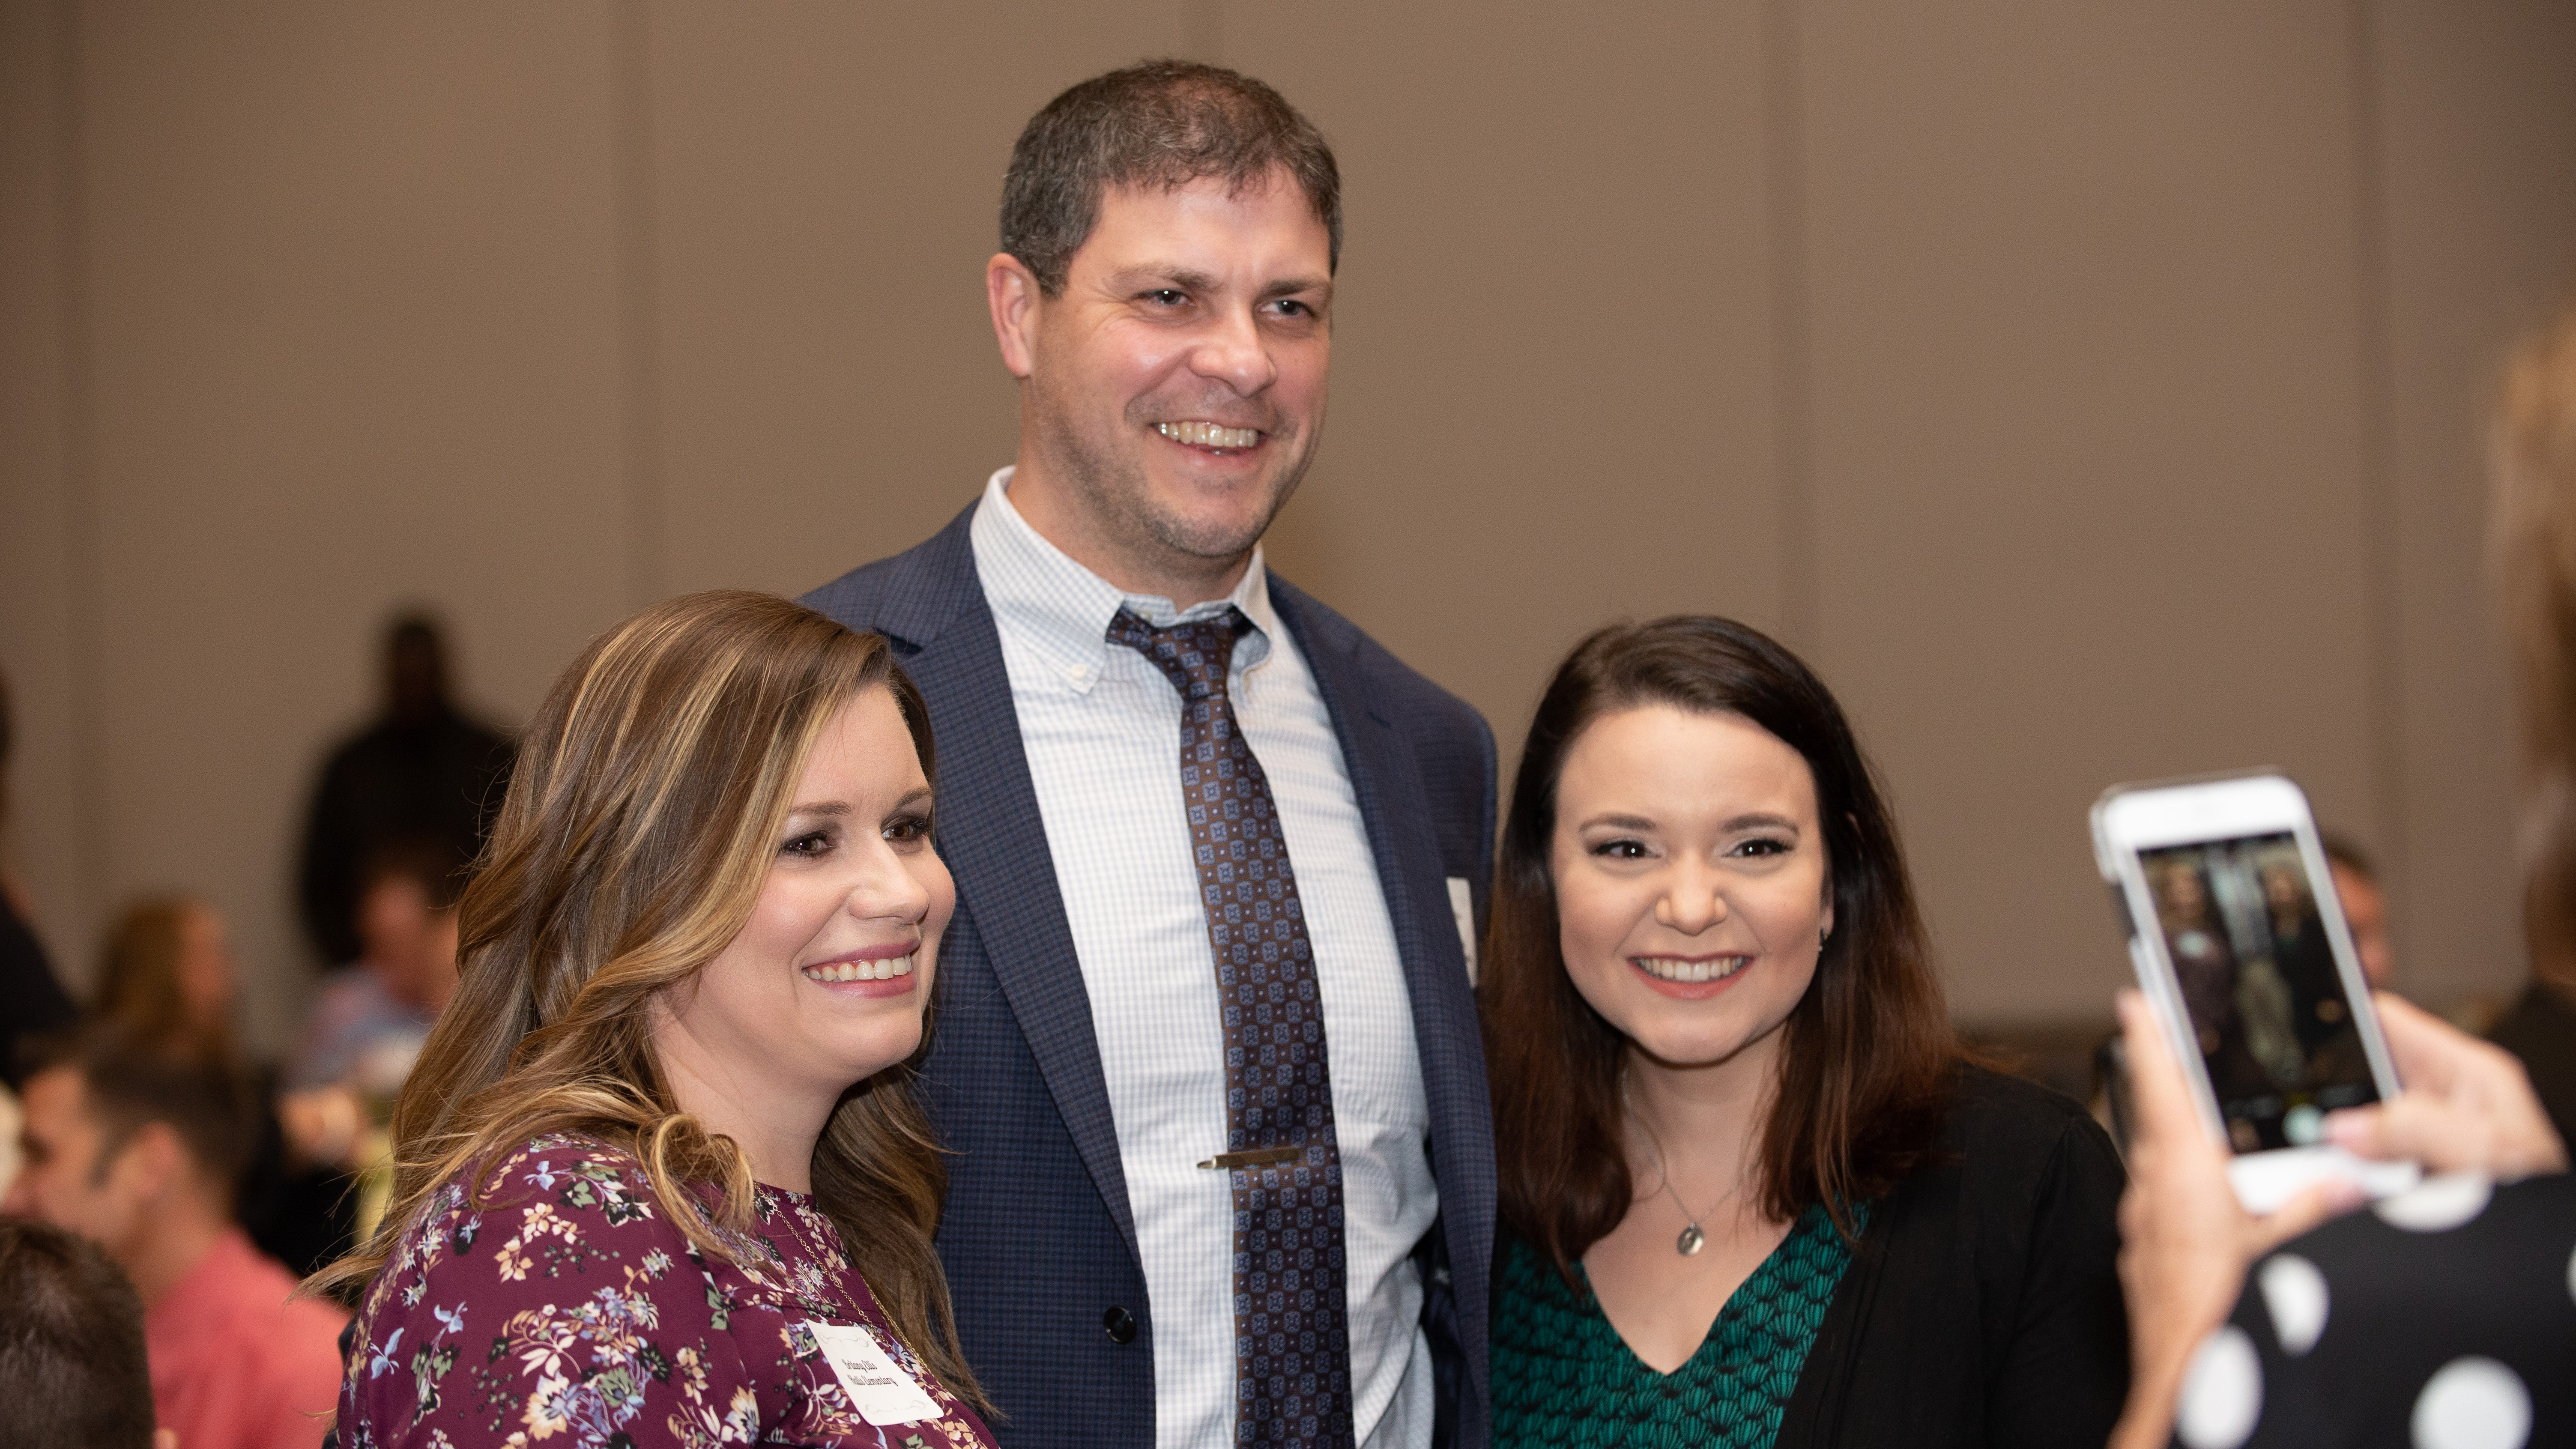 Halls Elementary Principal Mitchell Cox takes a picture with teachers Britany Ellis (left) and Rachel Todd at the KCS Teacher Of The Year dinner on Feb. 26, 2019.